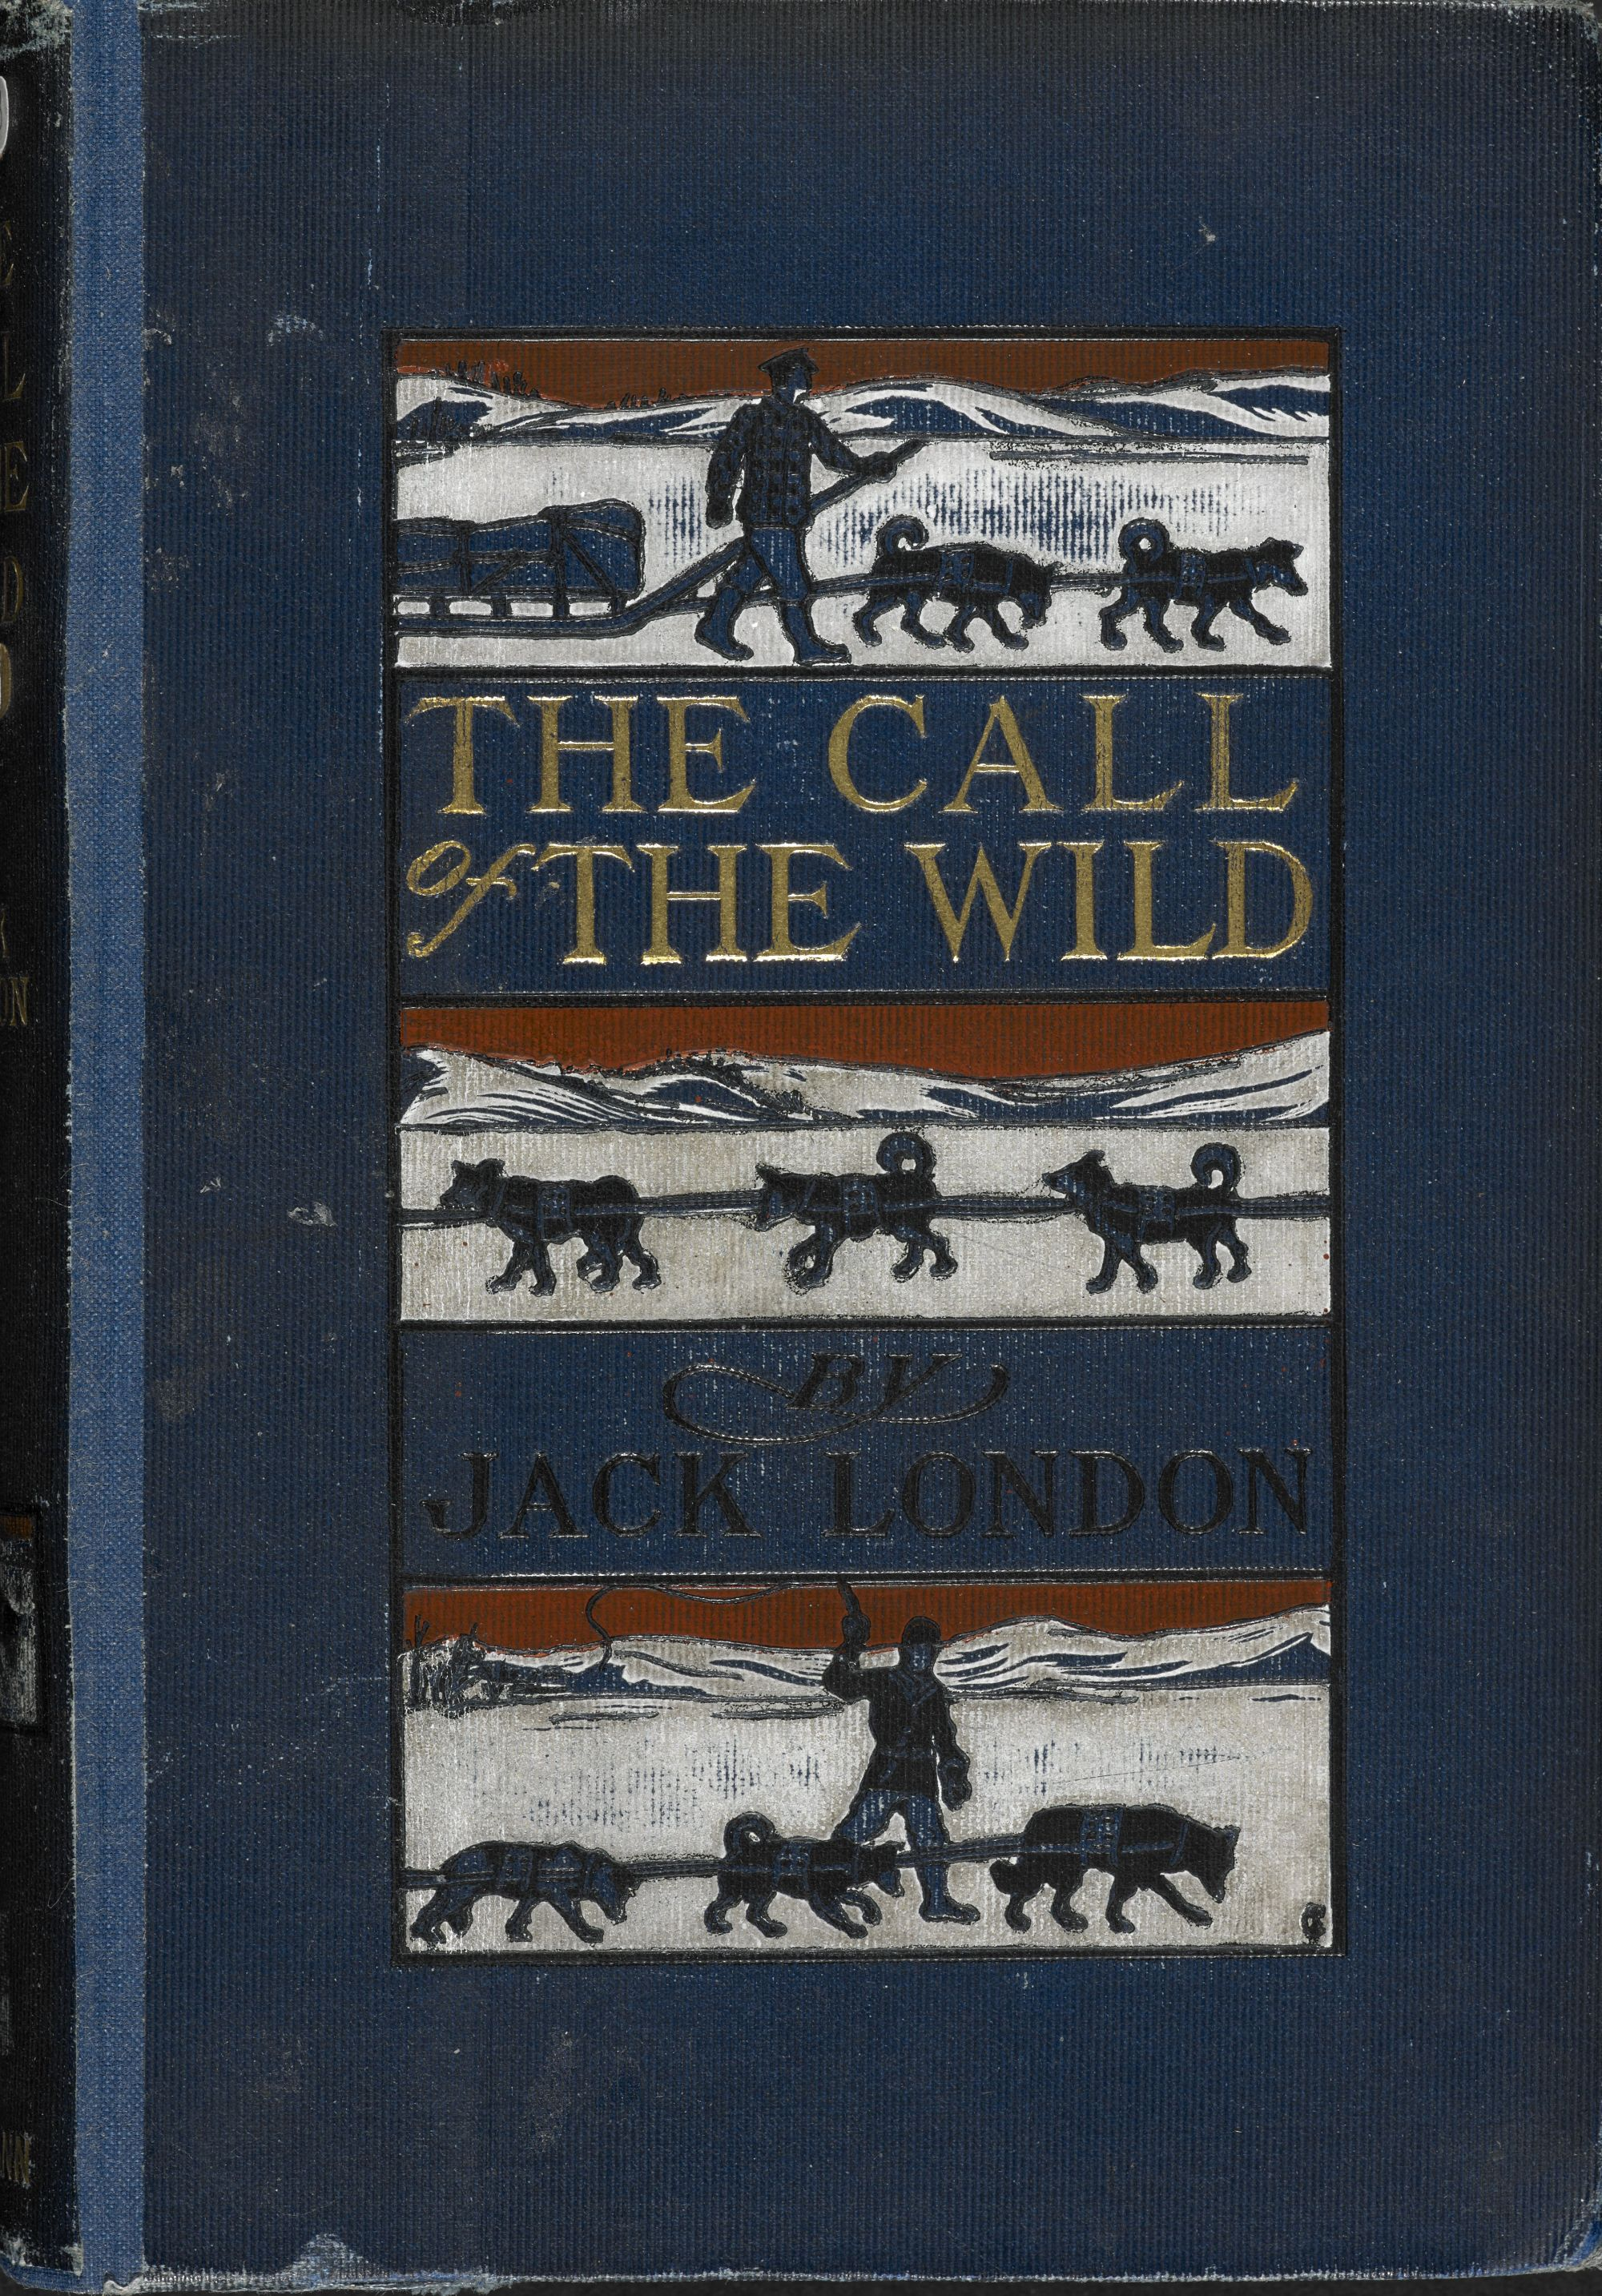 The cover of Jack London's 1903 edition of The Call of the Wild.